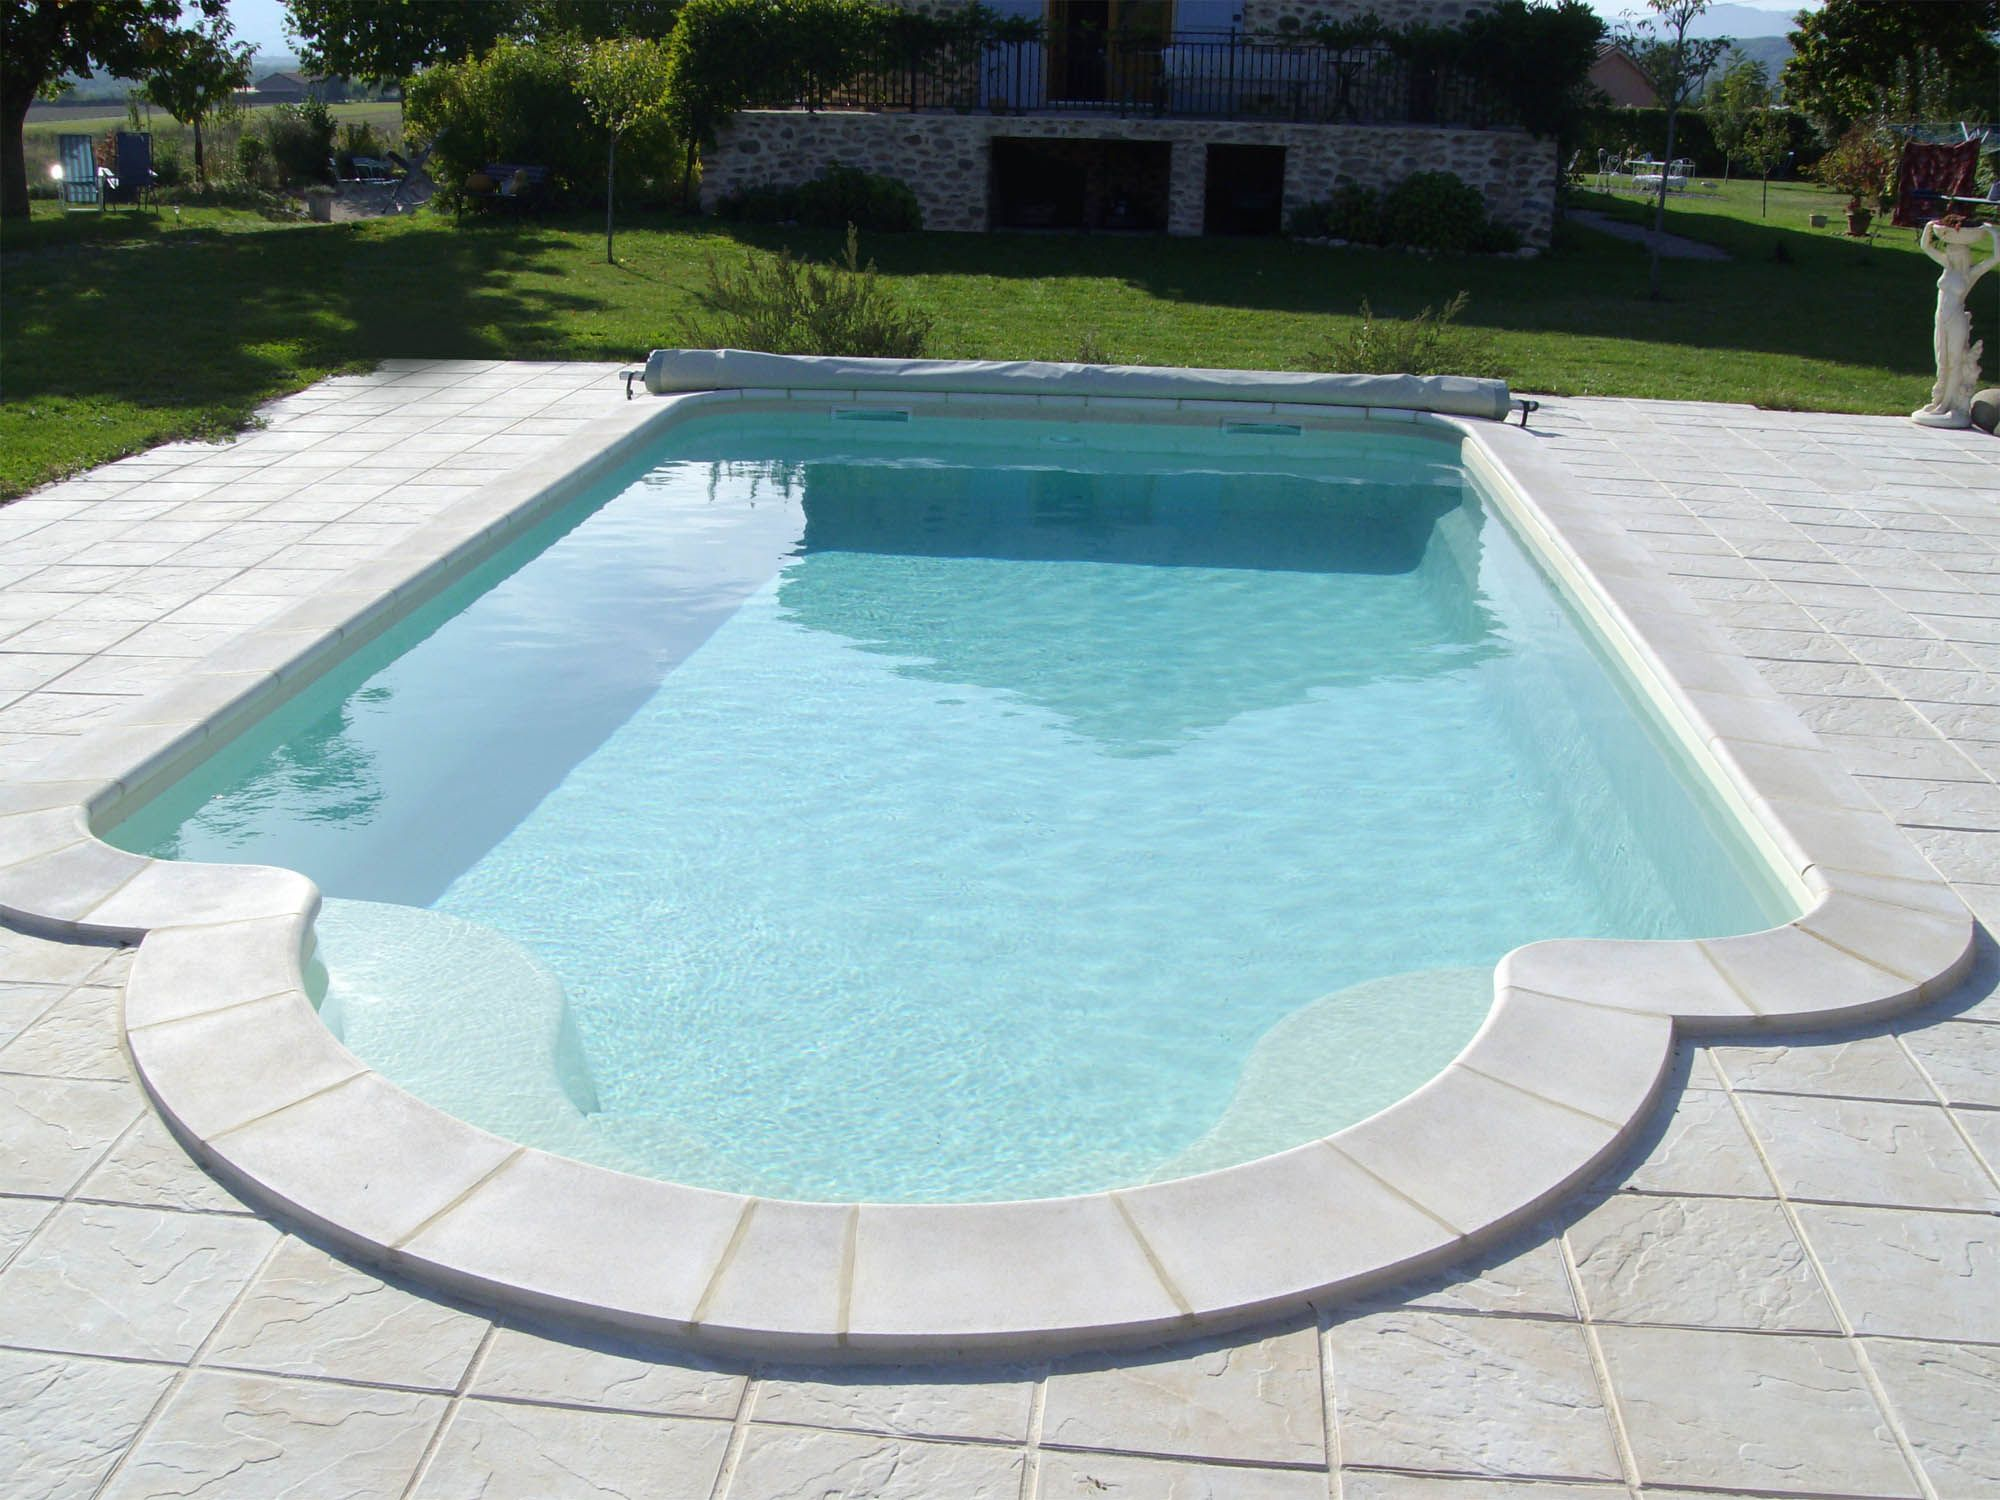 Piscine coque polyester variation fabrication fran aise for Fabrication piscine beton